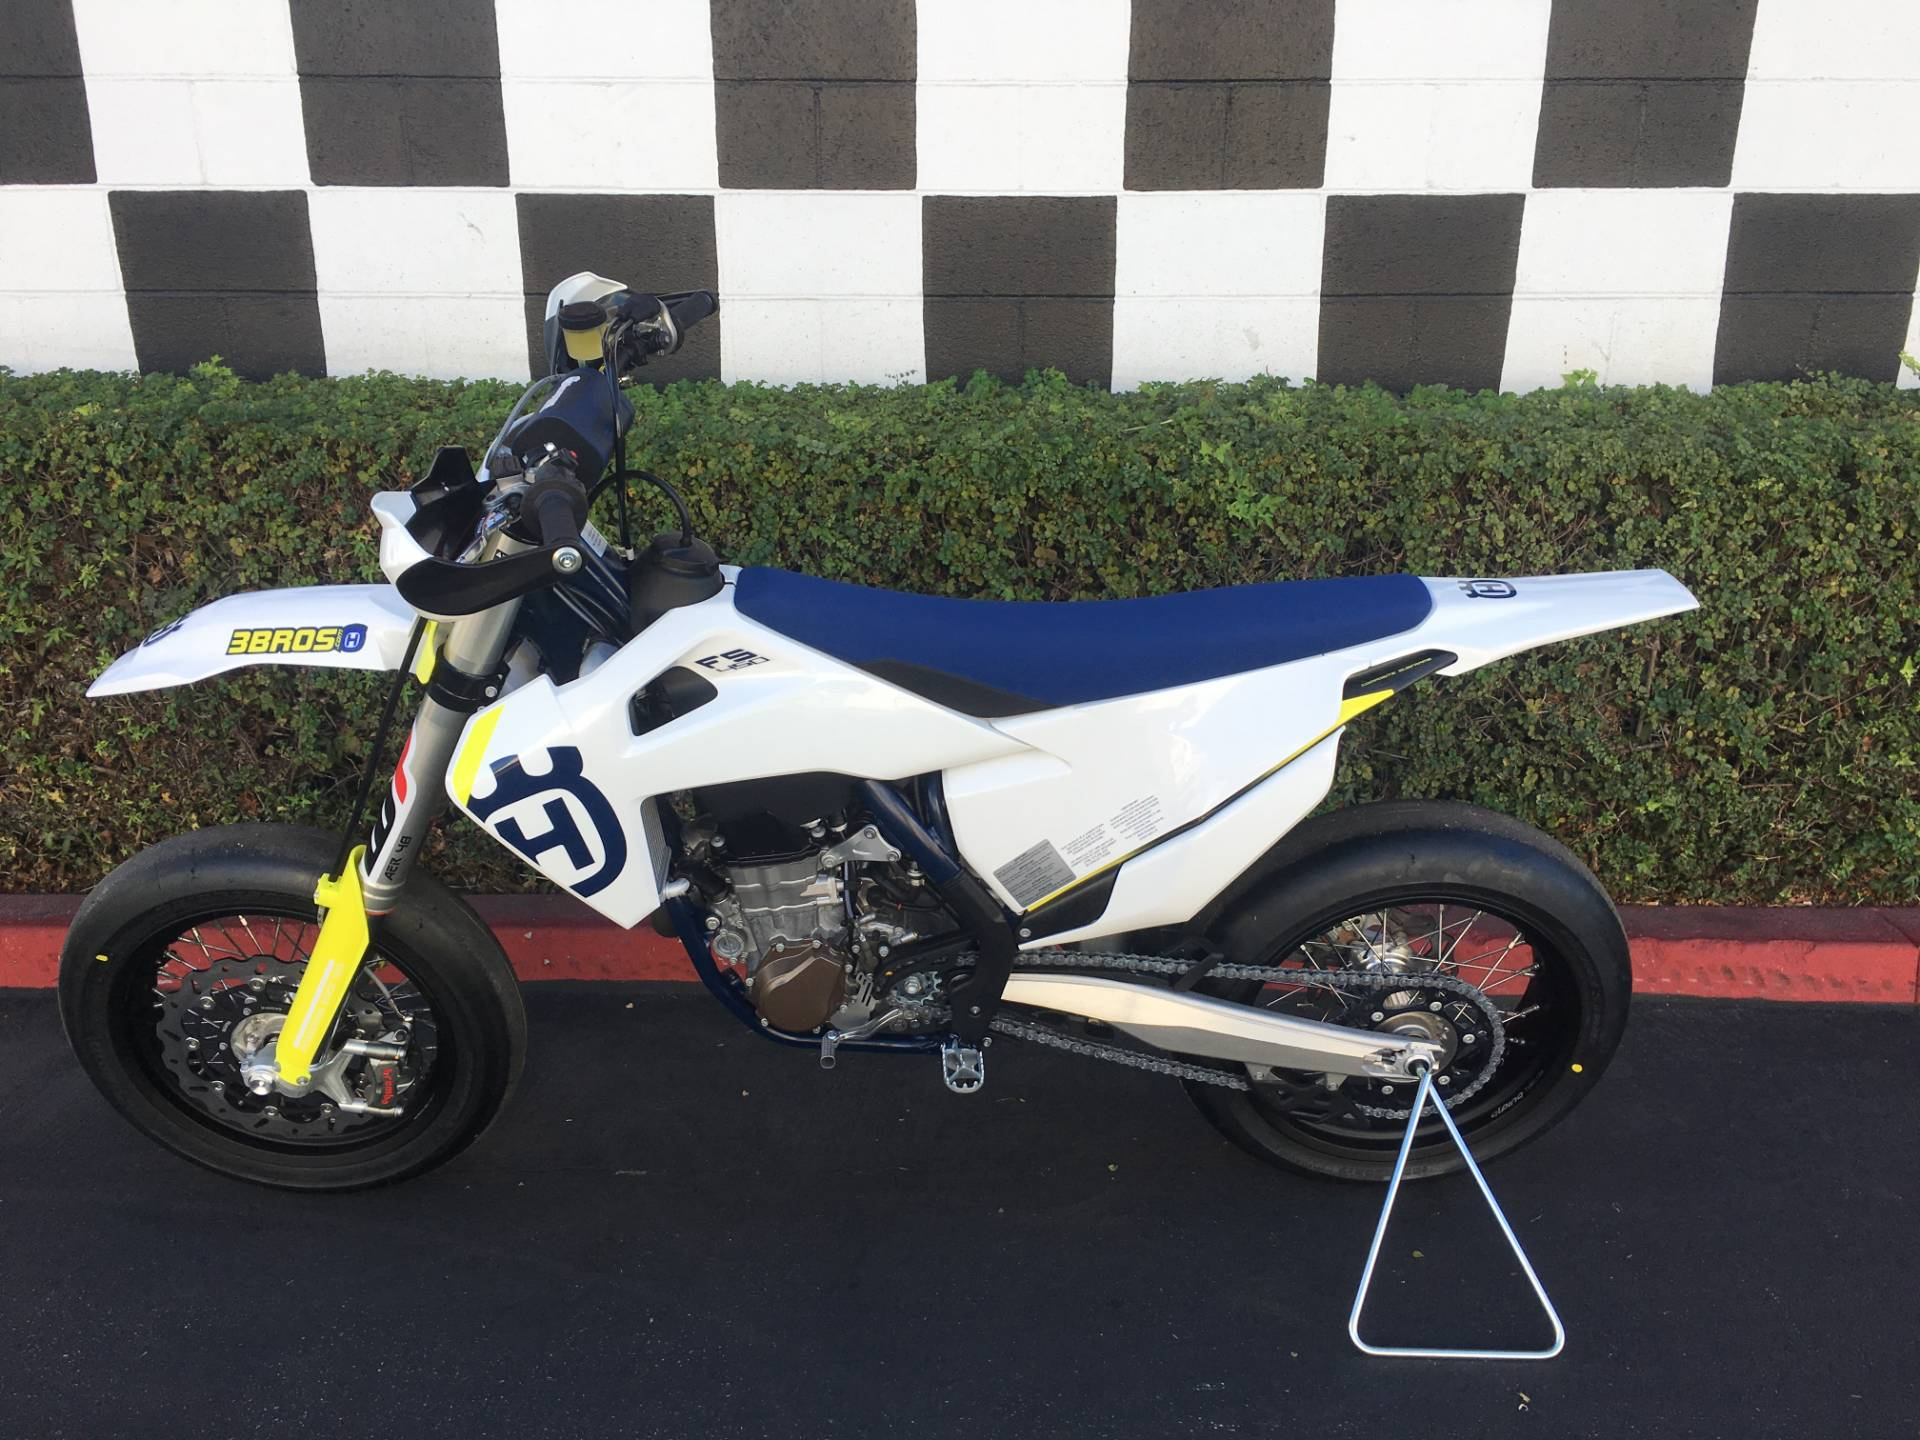 2019 Husqvarna FS 450 in Costa Mesa, California - Photo 2